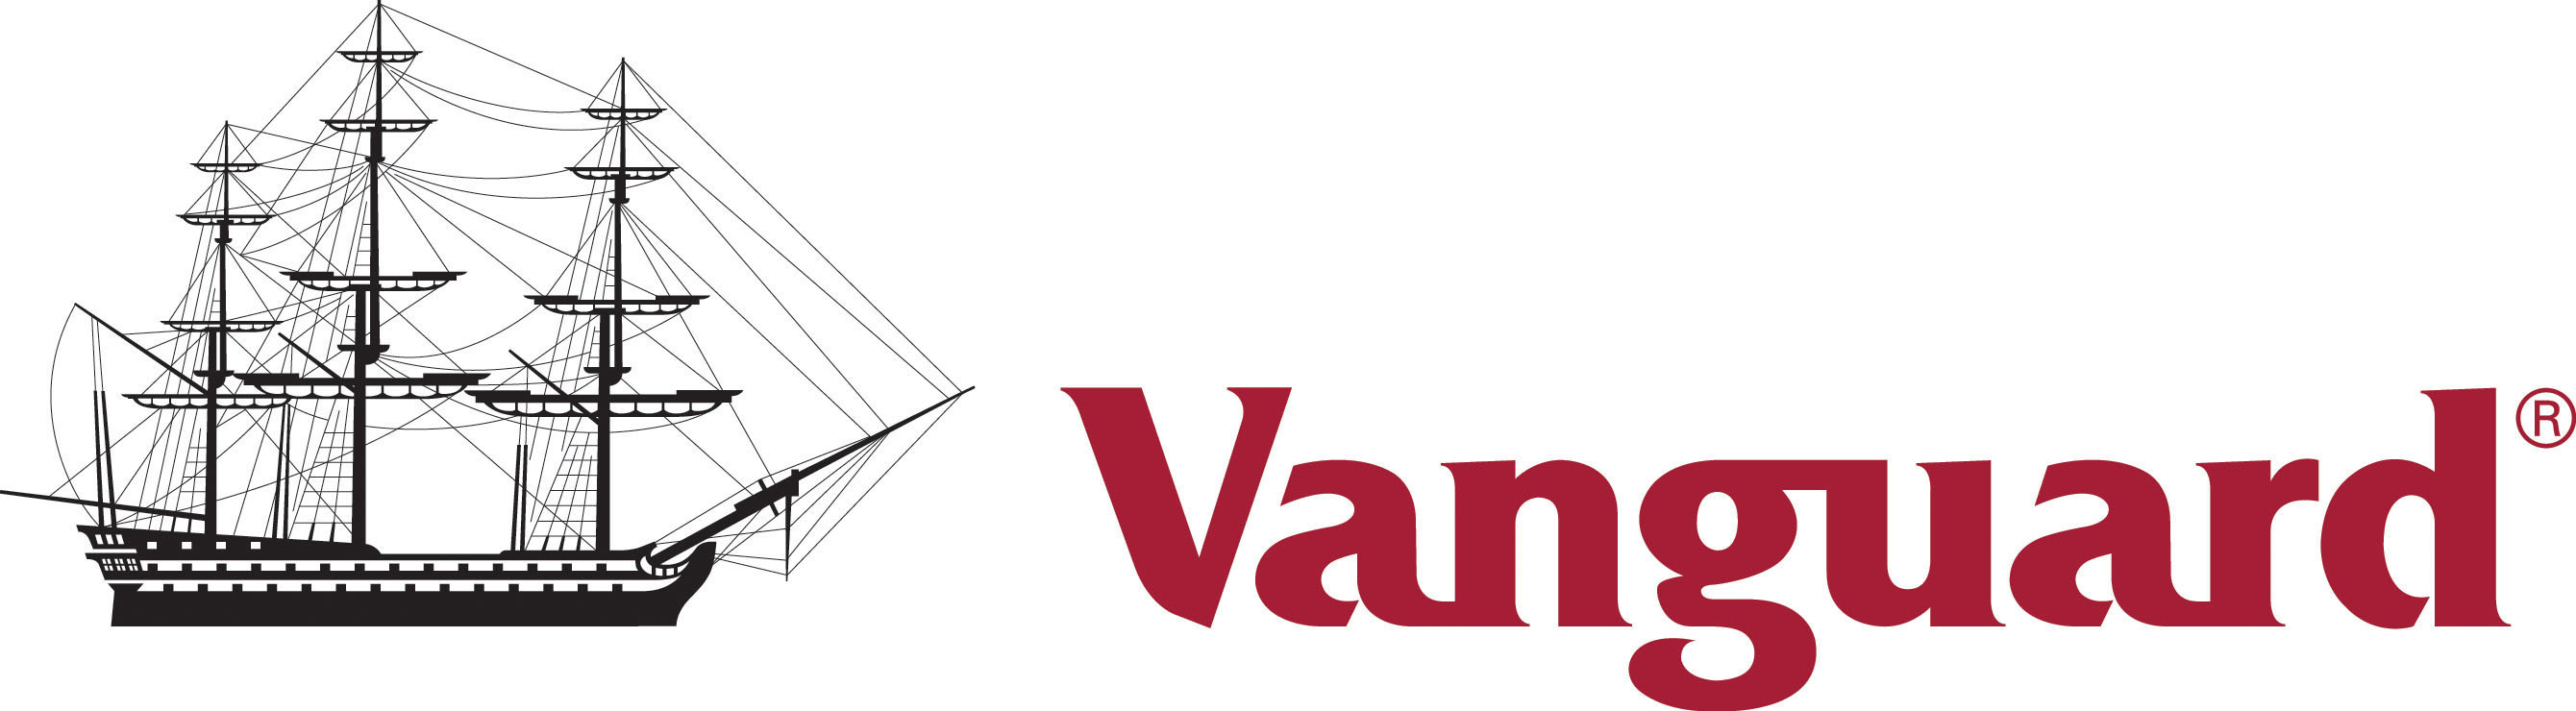 the complete list of vanguard etfs trading on the us stock exchanges